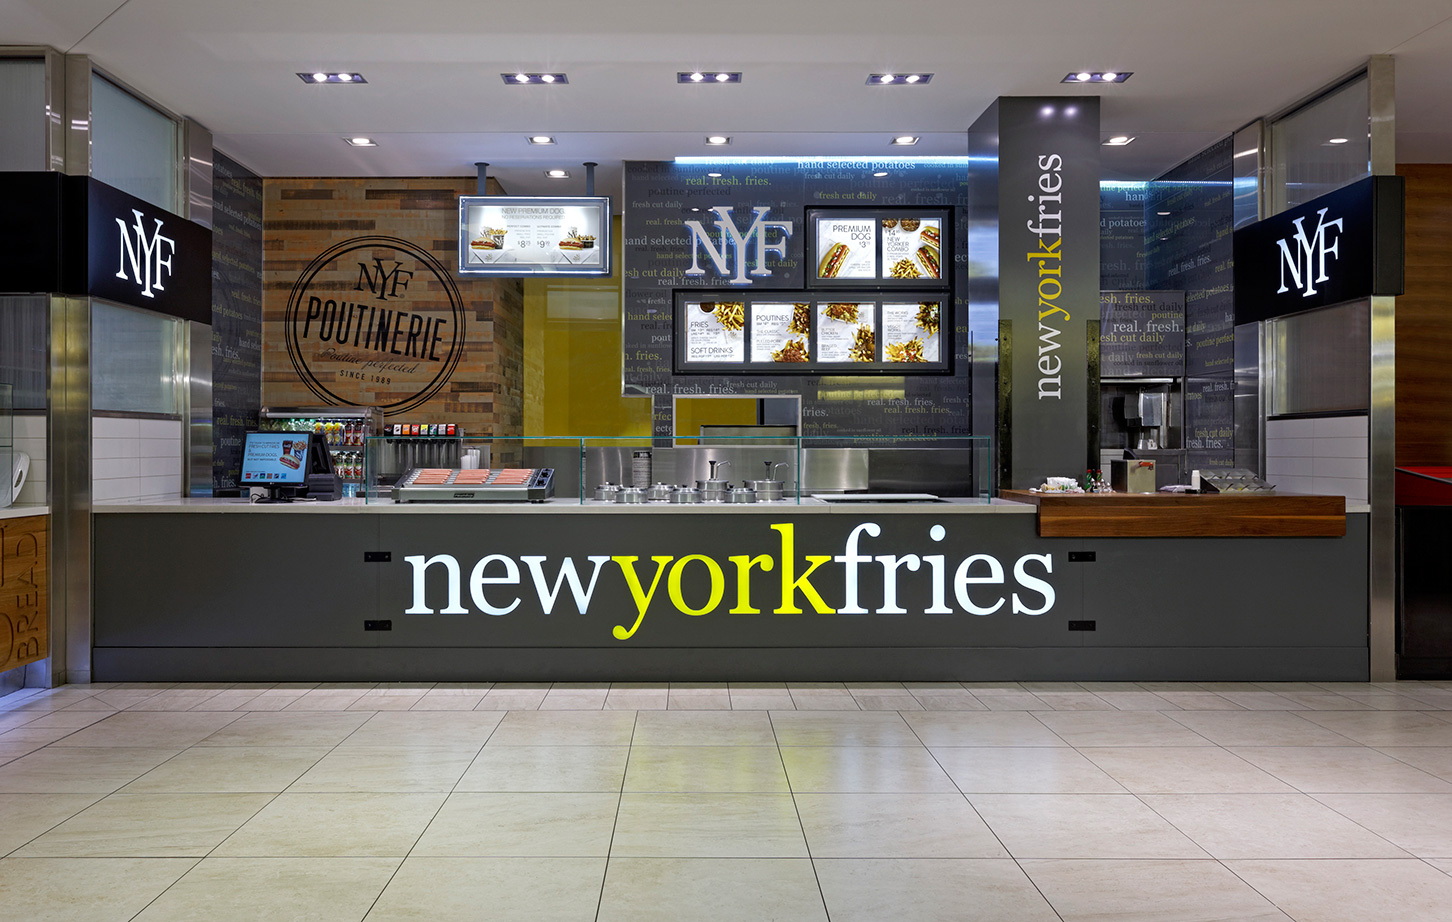 New York Fries to open first franchise in India this summer